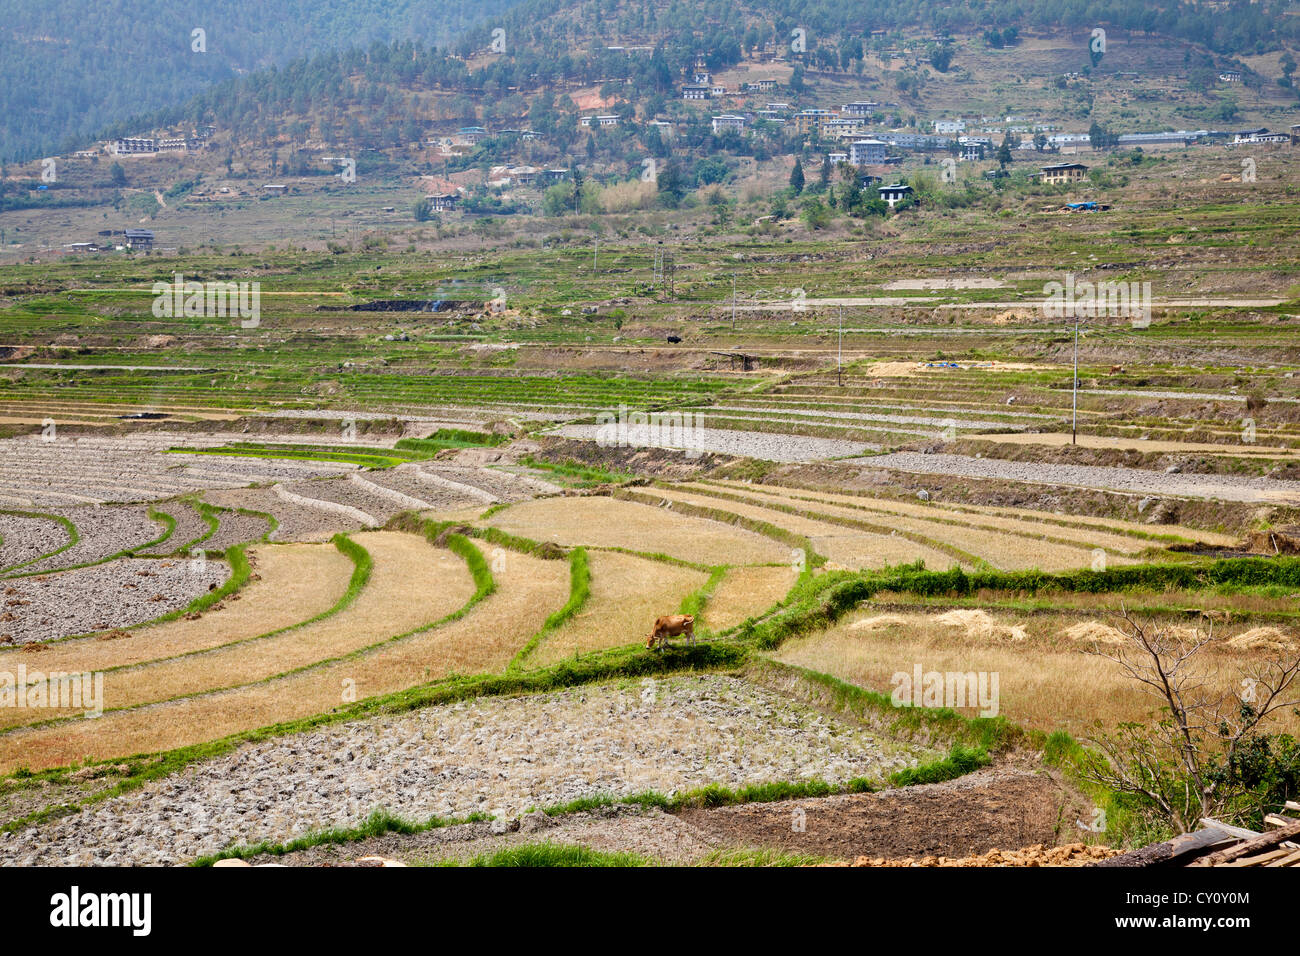 Terraced field and bhutanese village - Stock Image